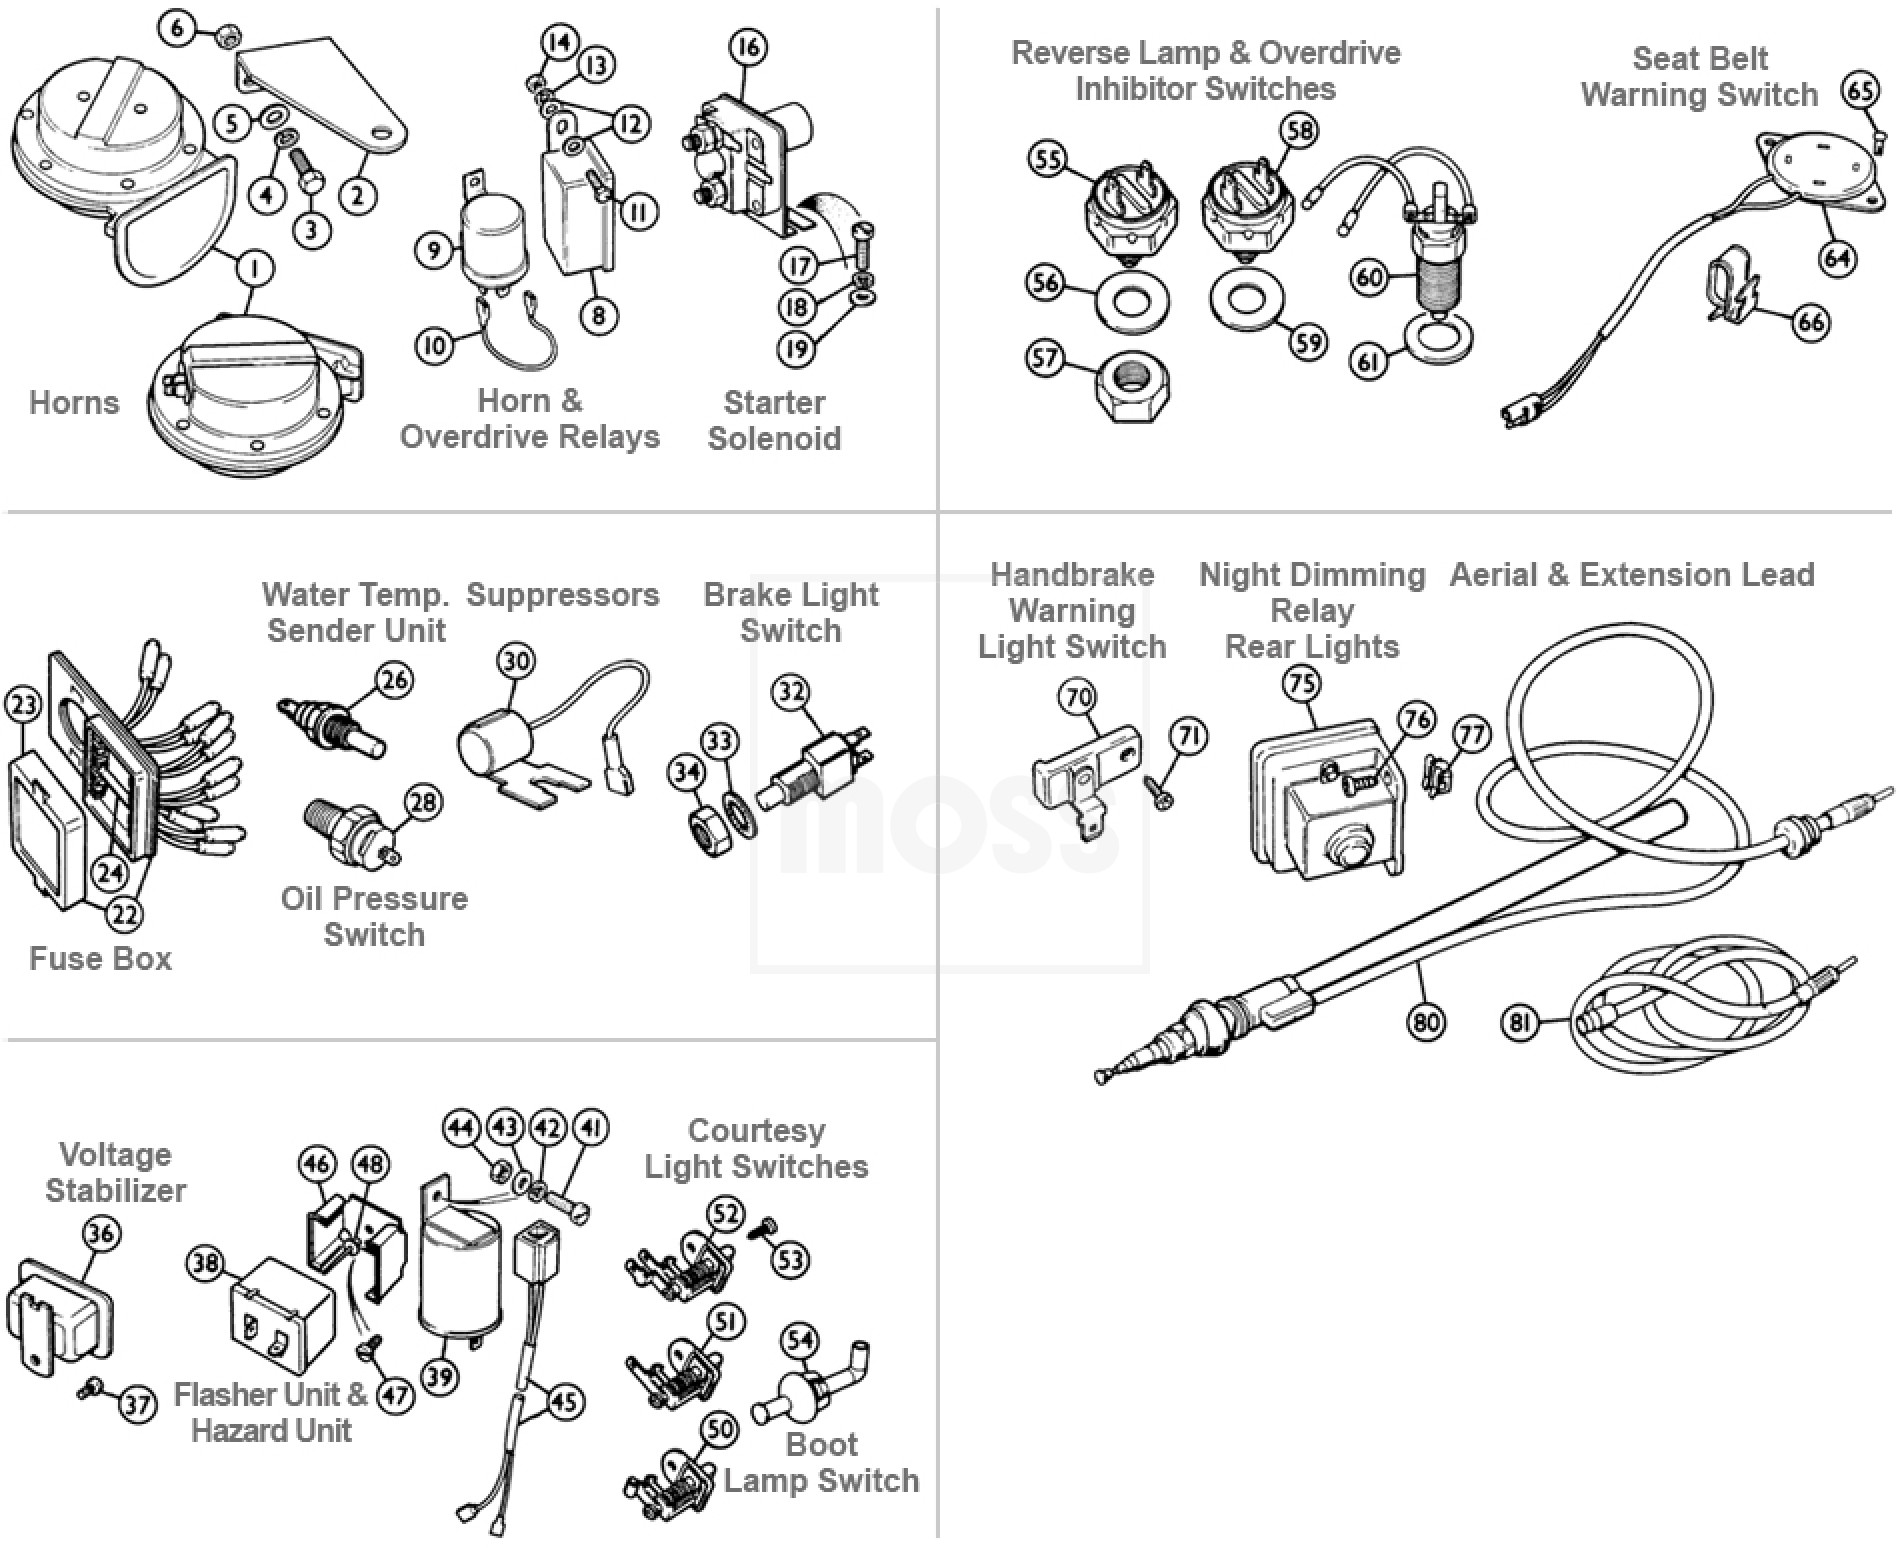 General Electrical Fittings